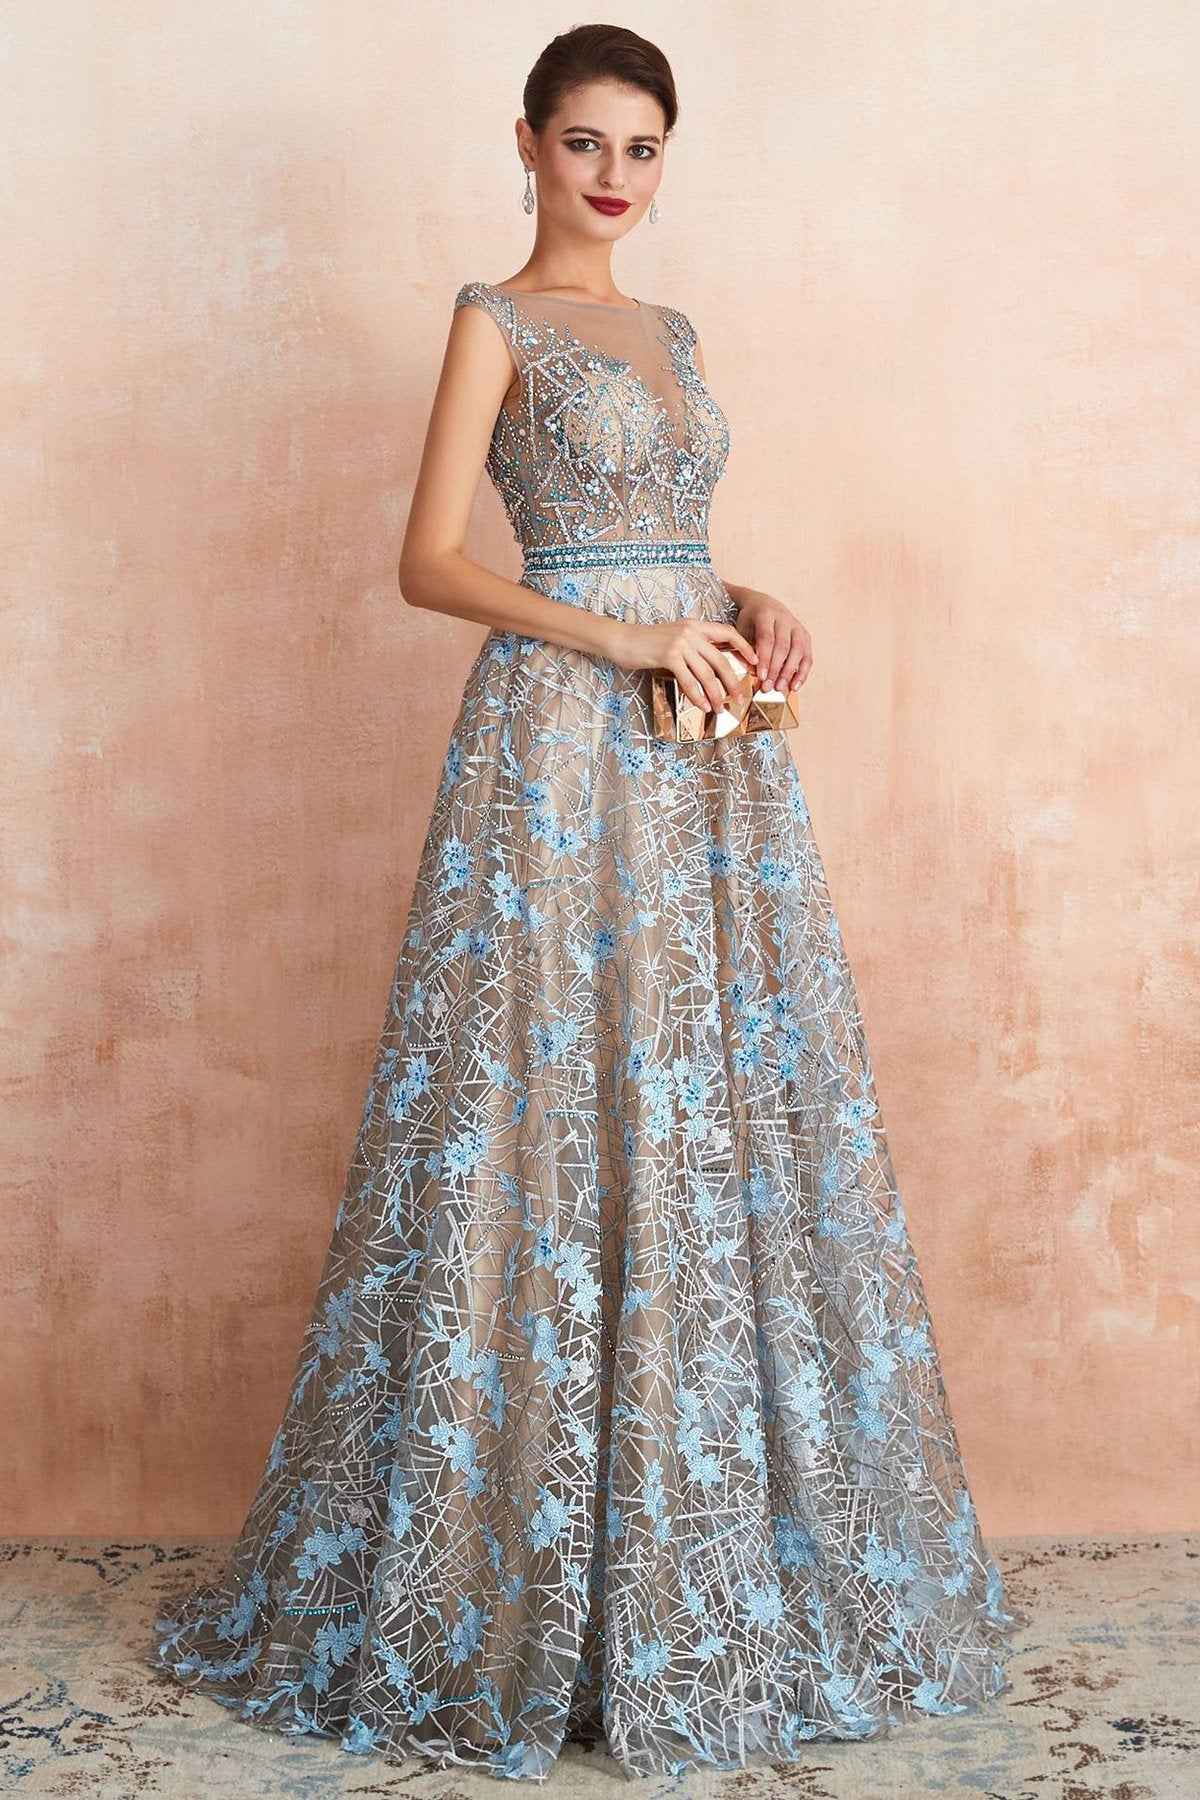 Deep V-Neck Floral See Through Evening Dress Evening Dresses US2 Blue